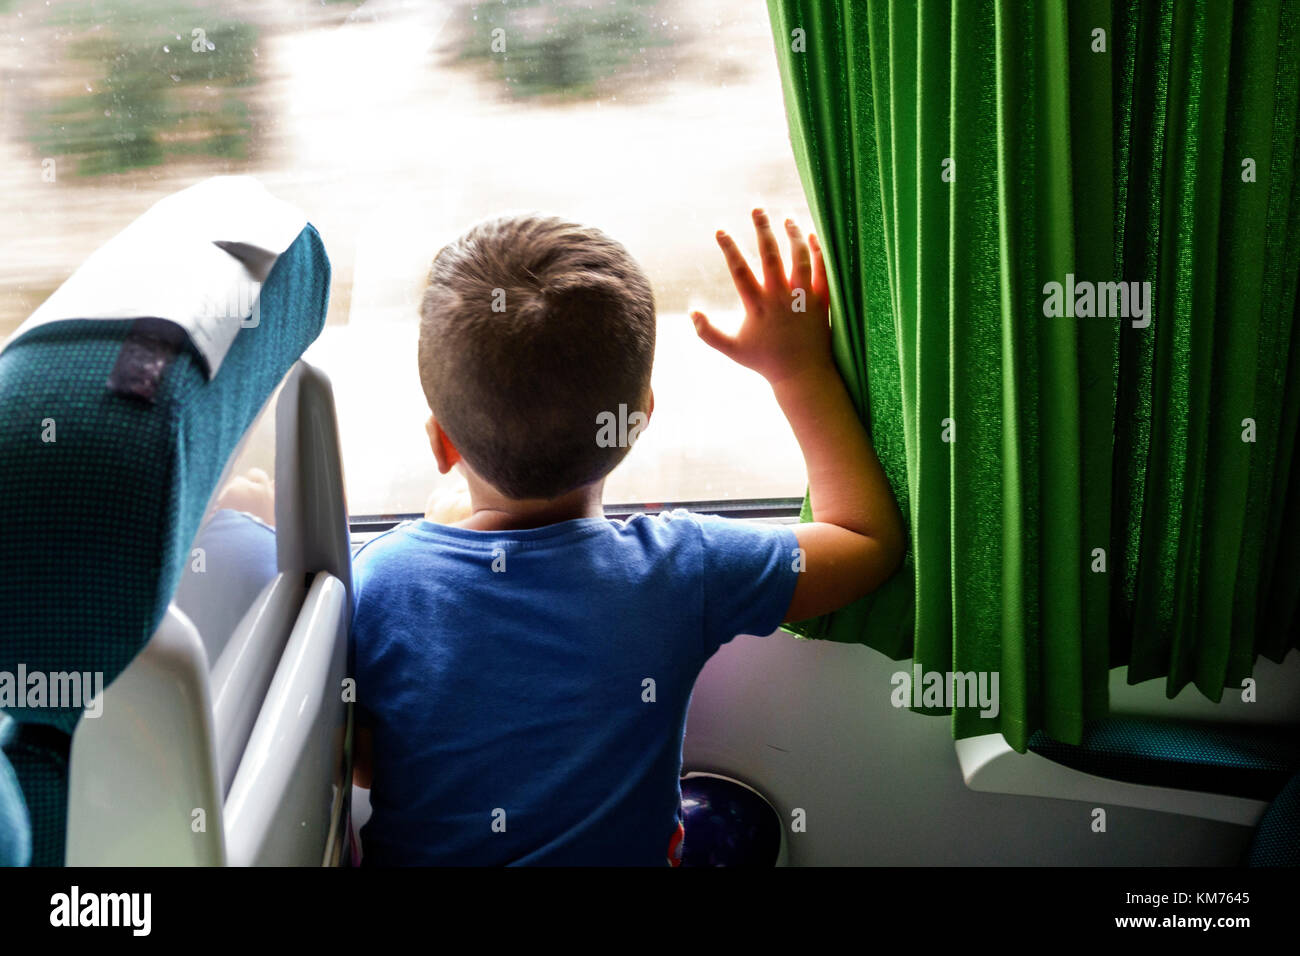 Coimbra Portugal Comboios de Portugal railway train boy rider cabin inside touching window looking out - Stock Image